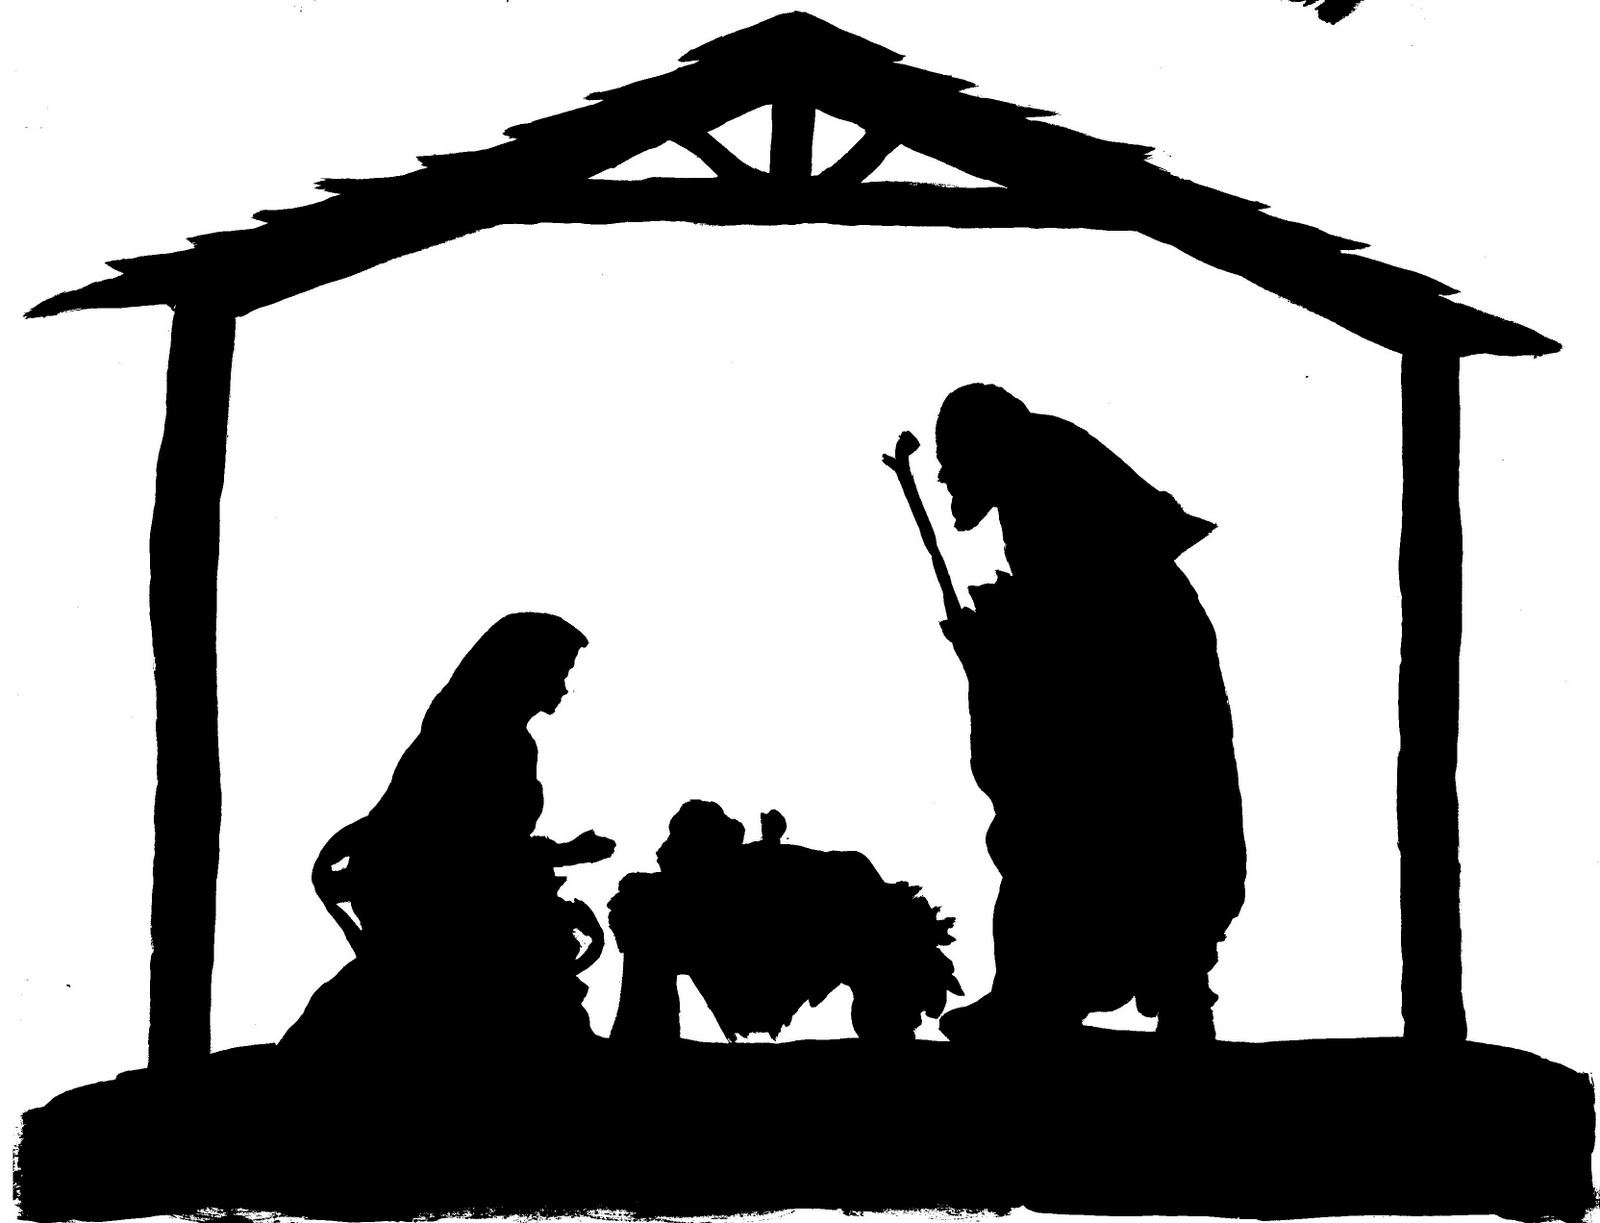 Nativity Silhouette Patterns - Clipart library